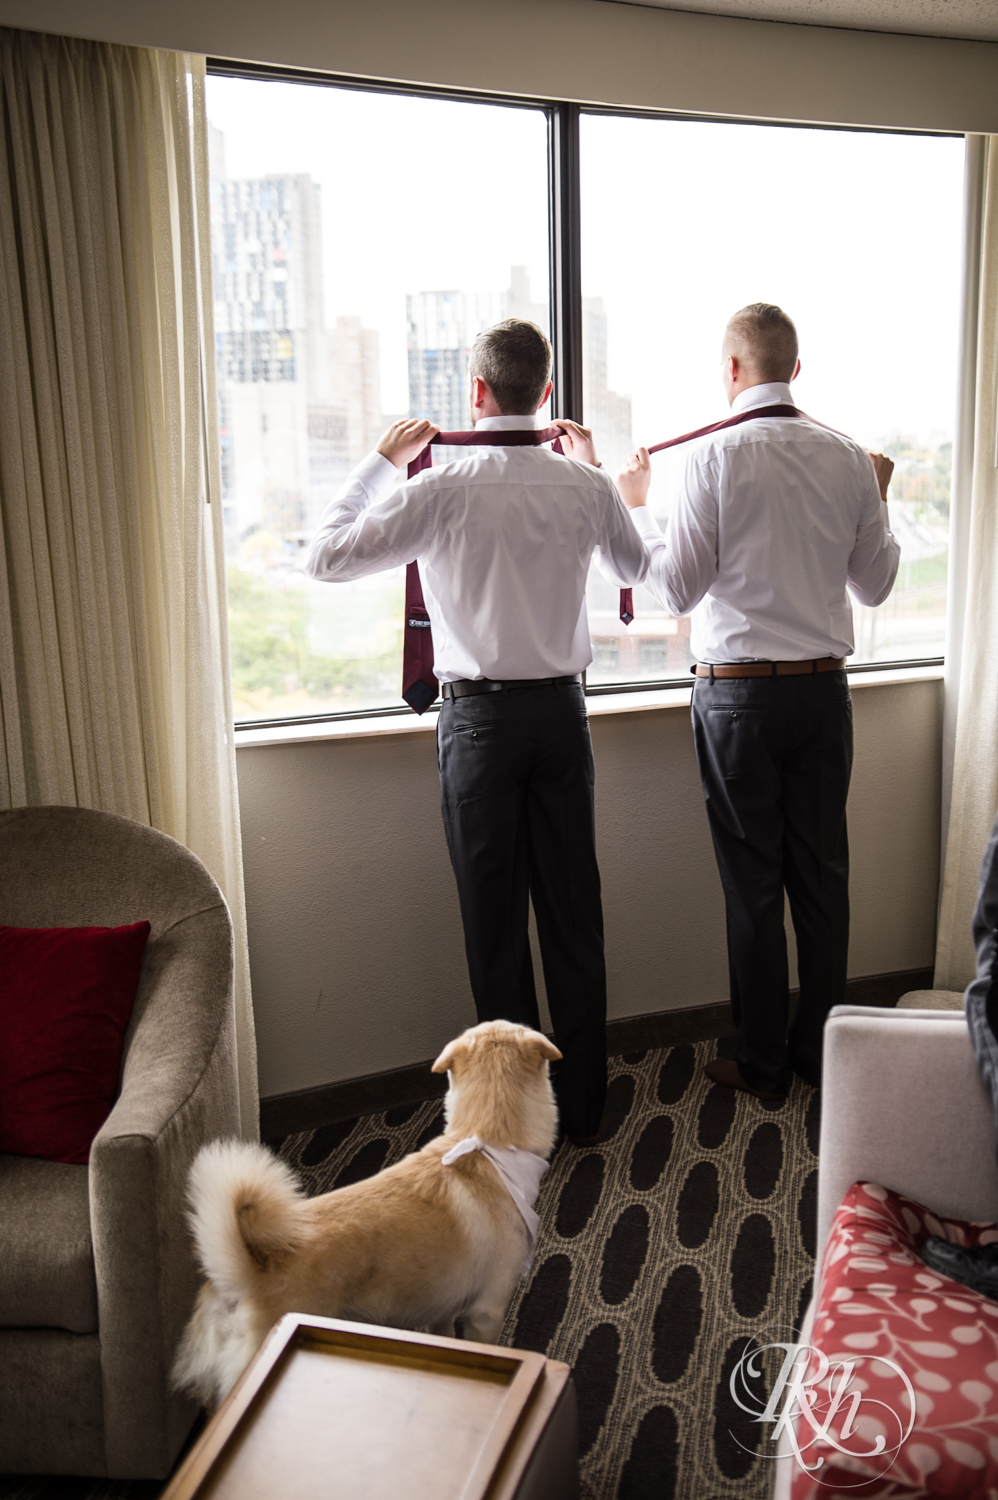 Michael & Darren - Minnesota LGBT Wedding Photography - Courtyard by Marriott Minneapolis - RKH Images - Blog (23 of 67).jpg